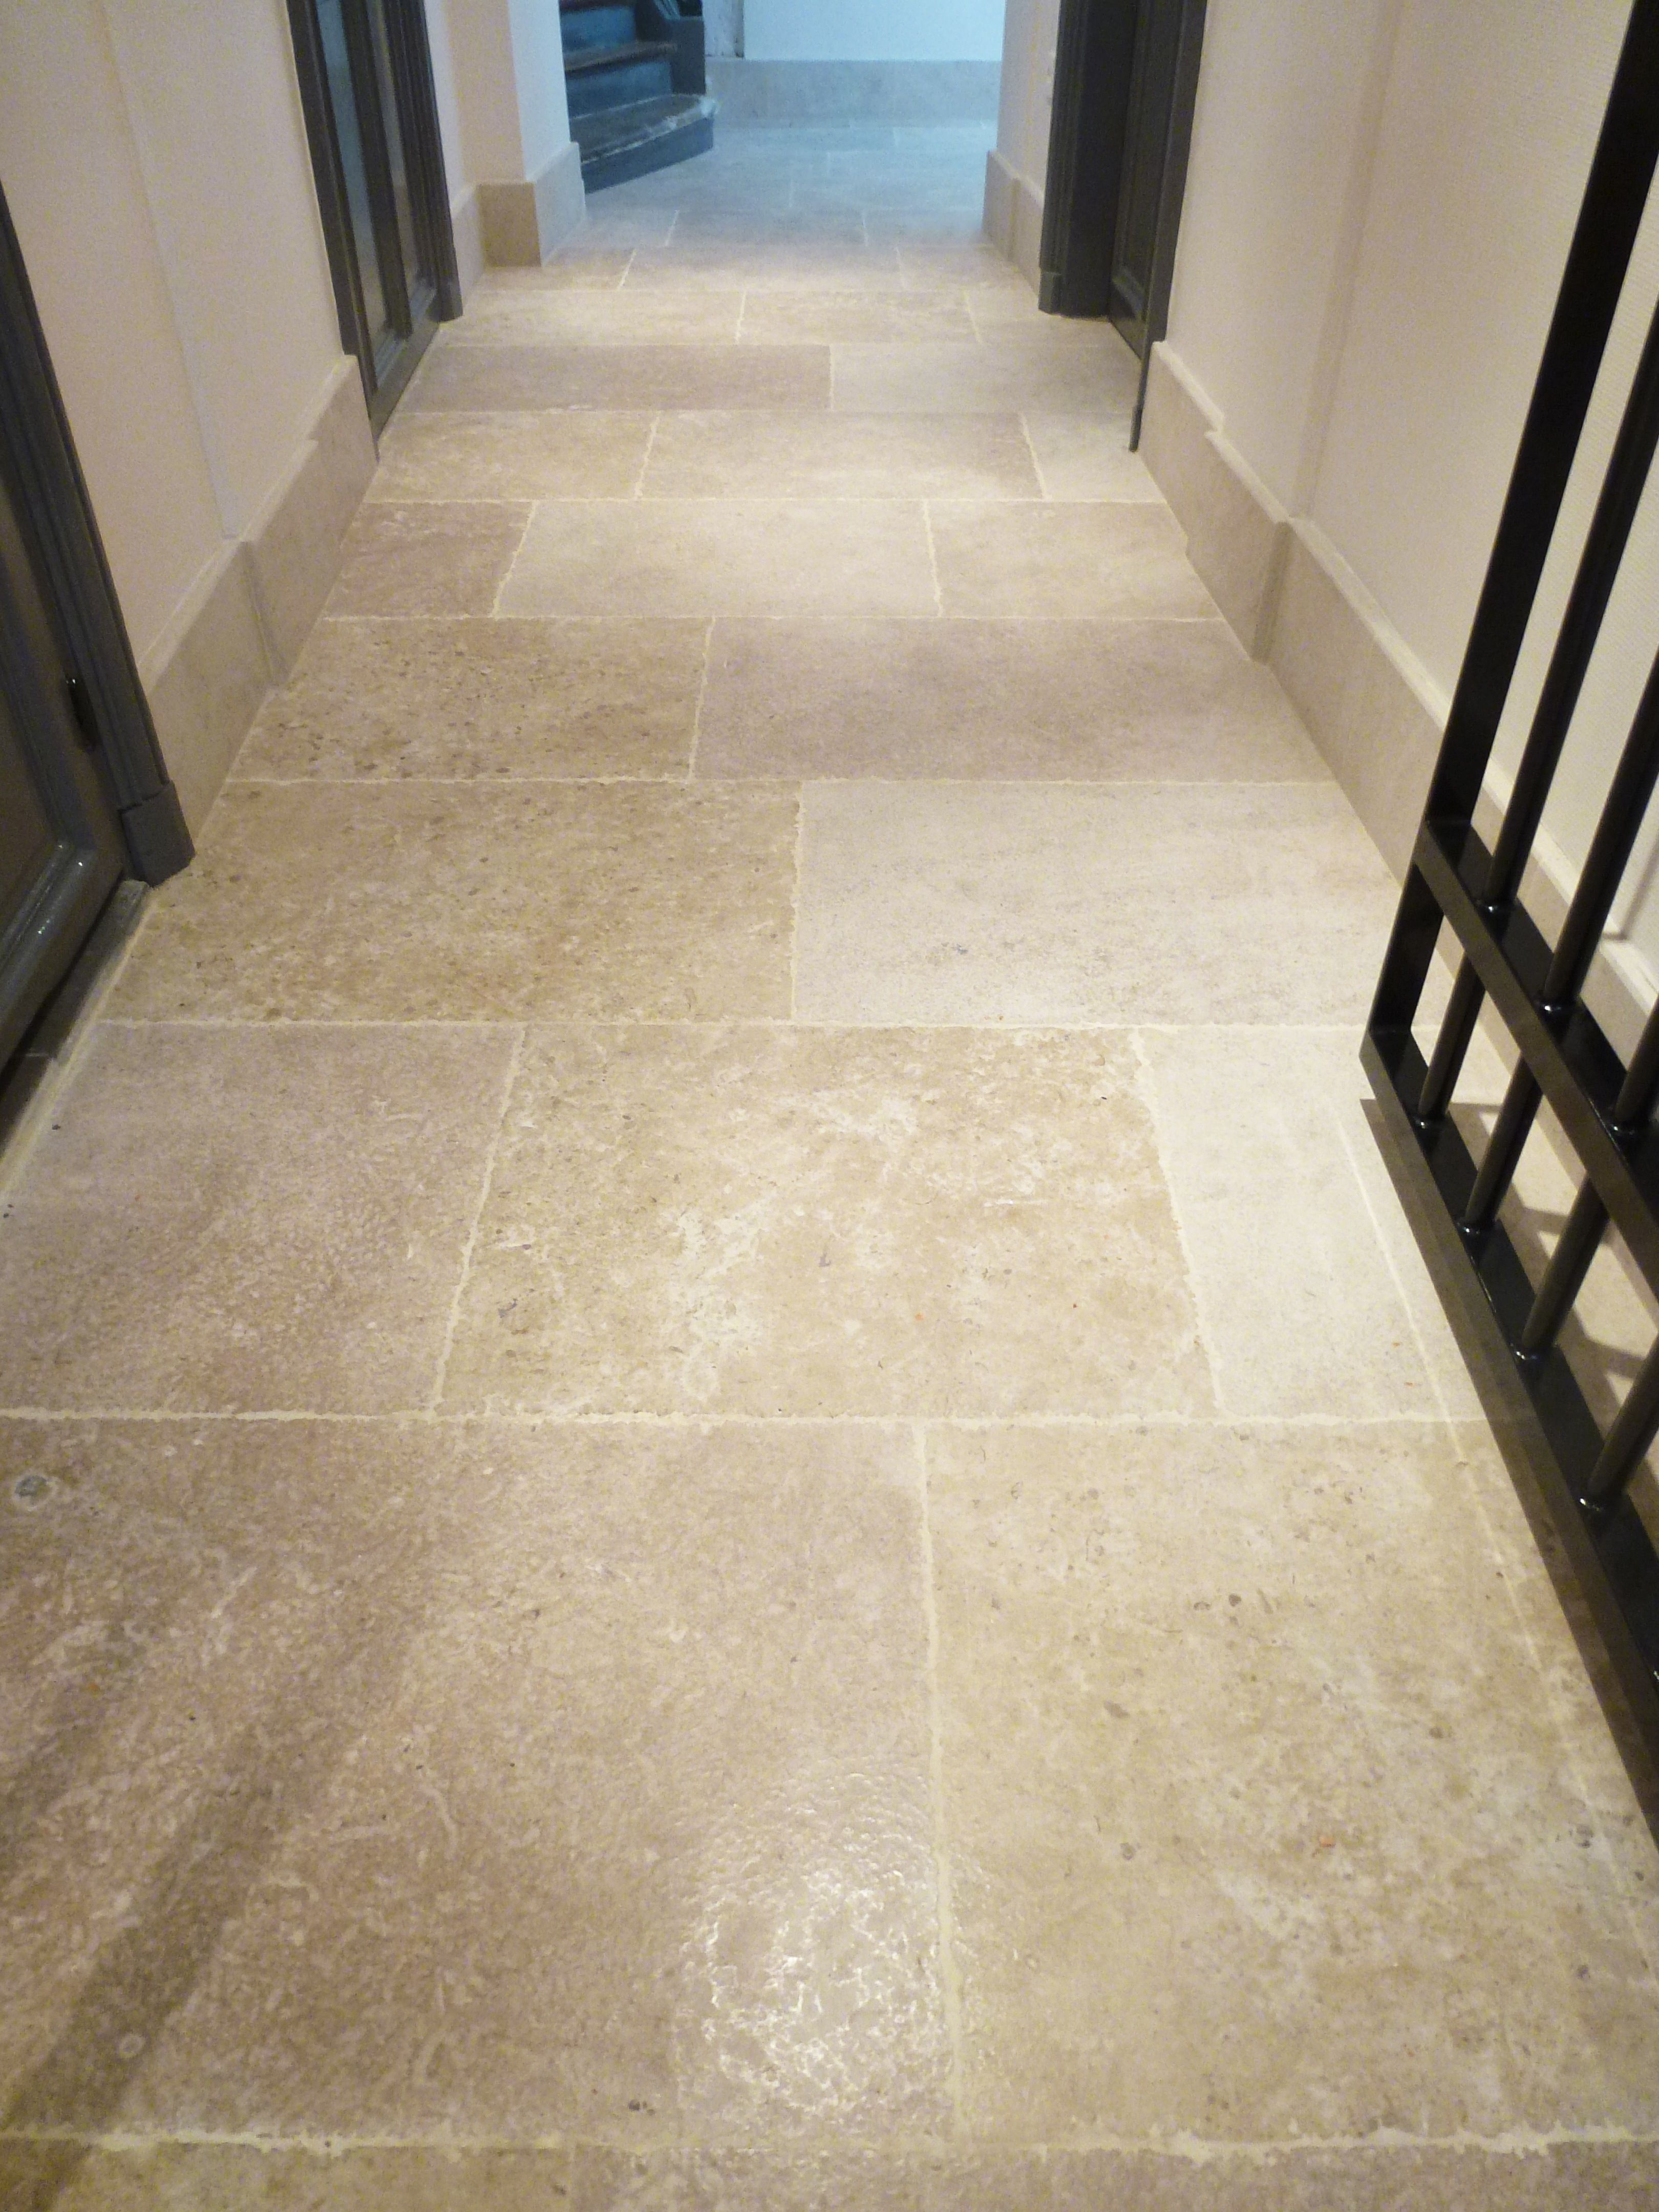 Flagstone In Natural Stones En 2020 Dallage Carrelage Pierre